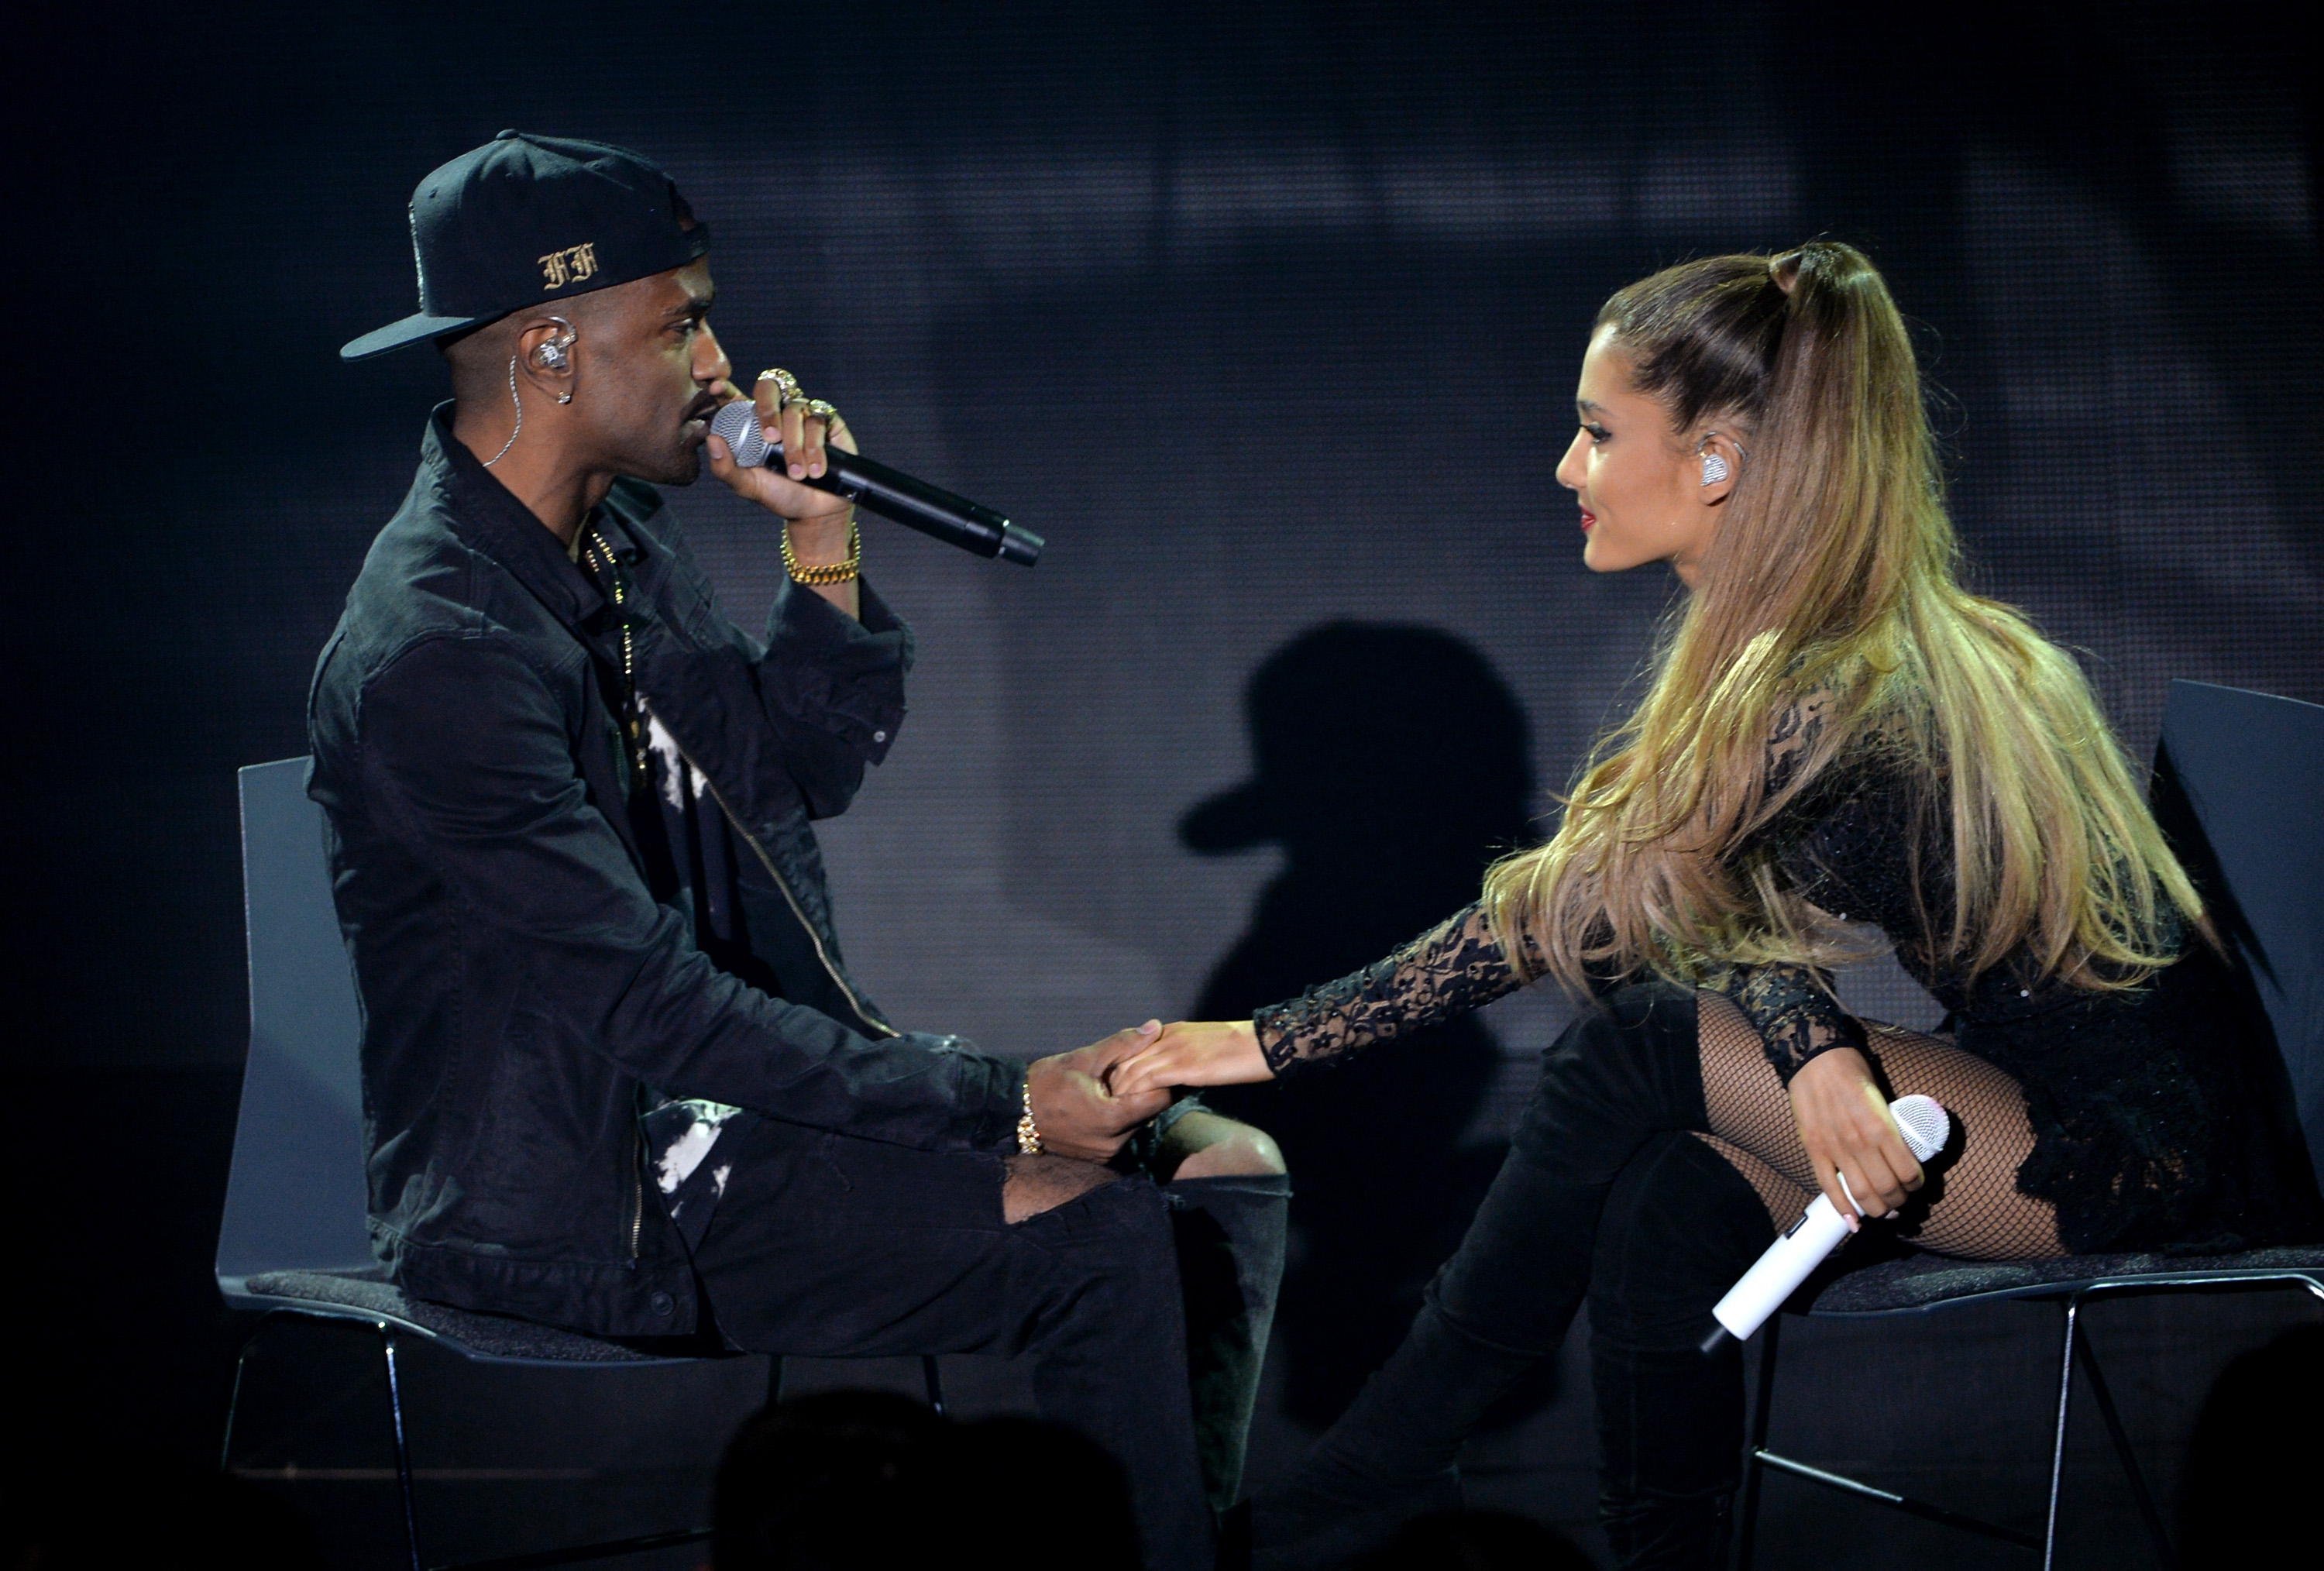 Ariana Grande Performs On The Honda Stage At The iHeartRadio Theater In Los Angeles.